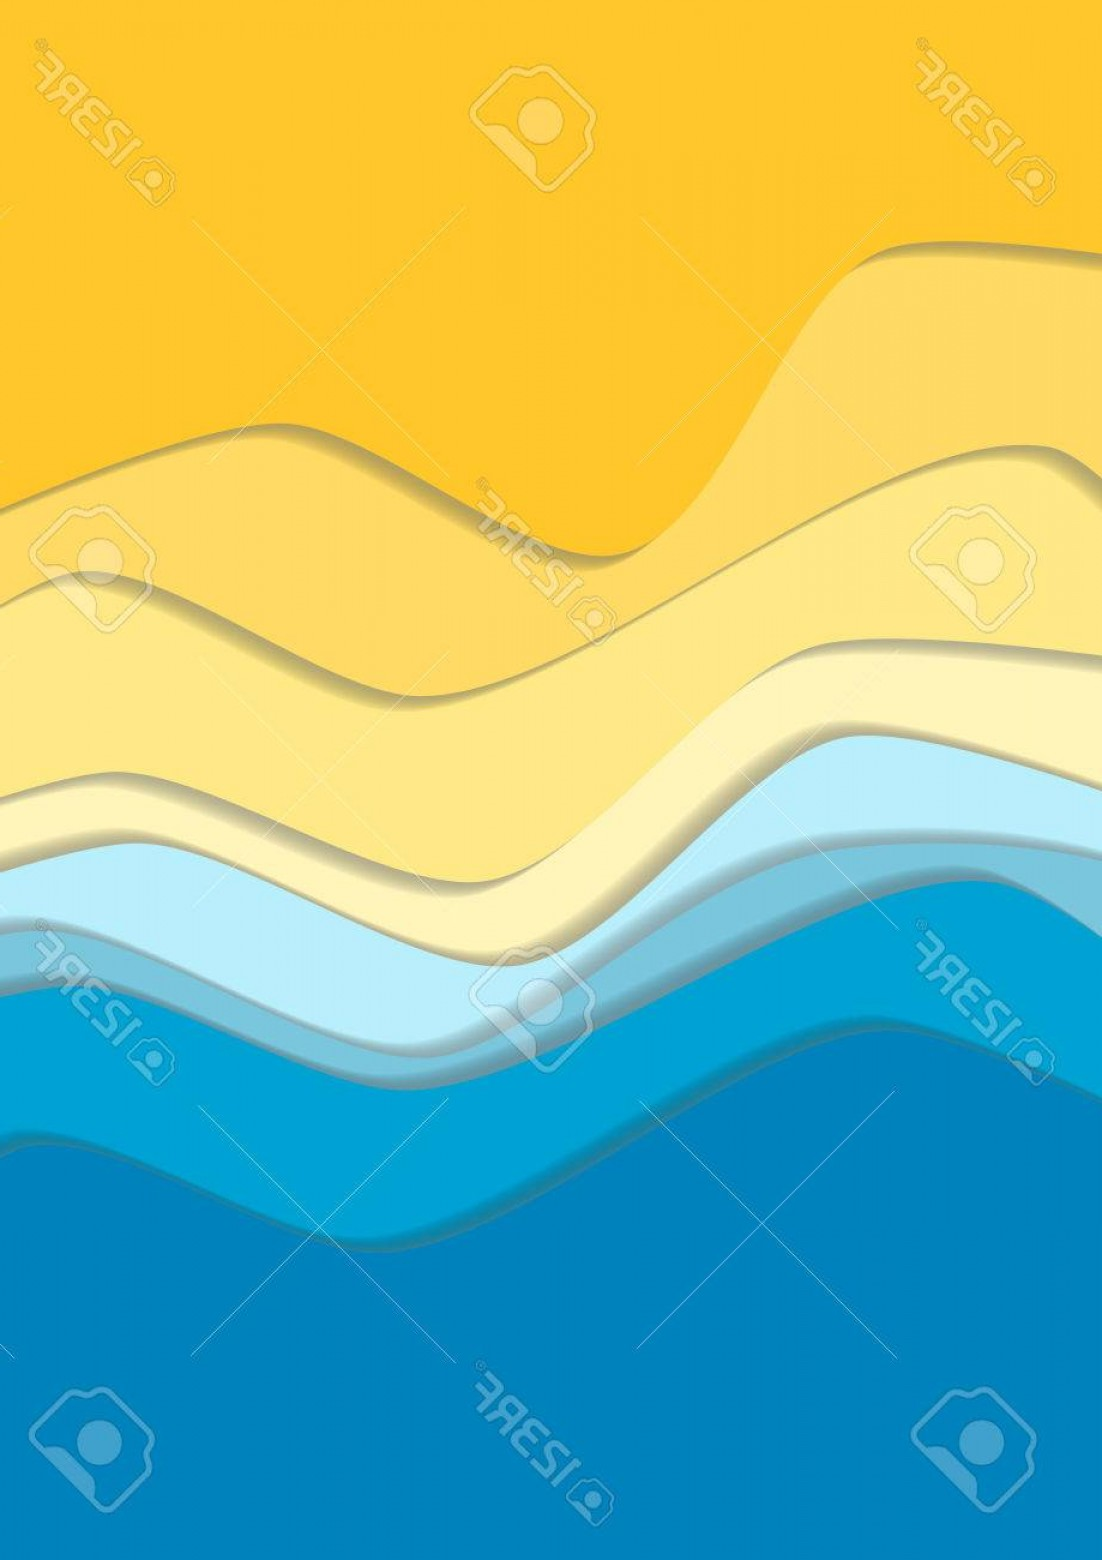 Vector Yellow And Orange Beach: Photostock Vector Yellow And Blue Curve Wave Line Background Sea And Beach In Paper Cut Style Cropped With Clipping Ma